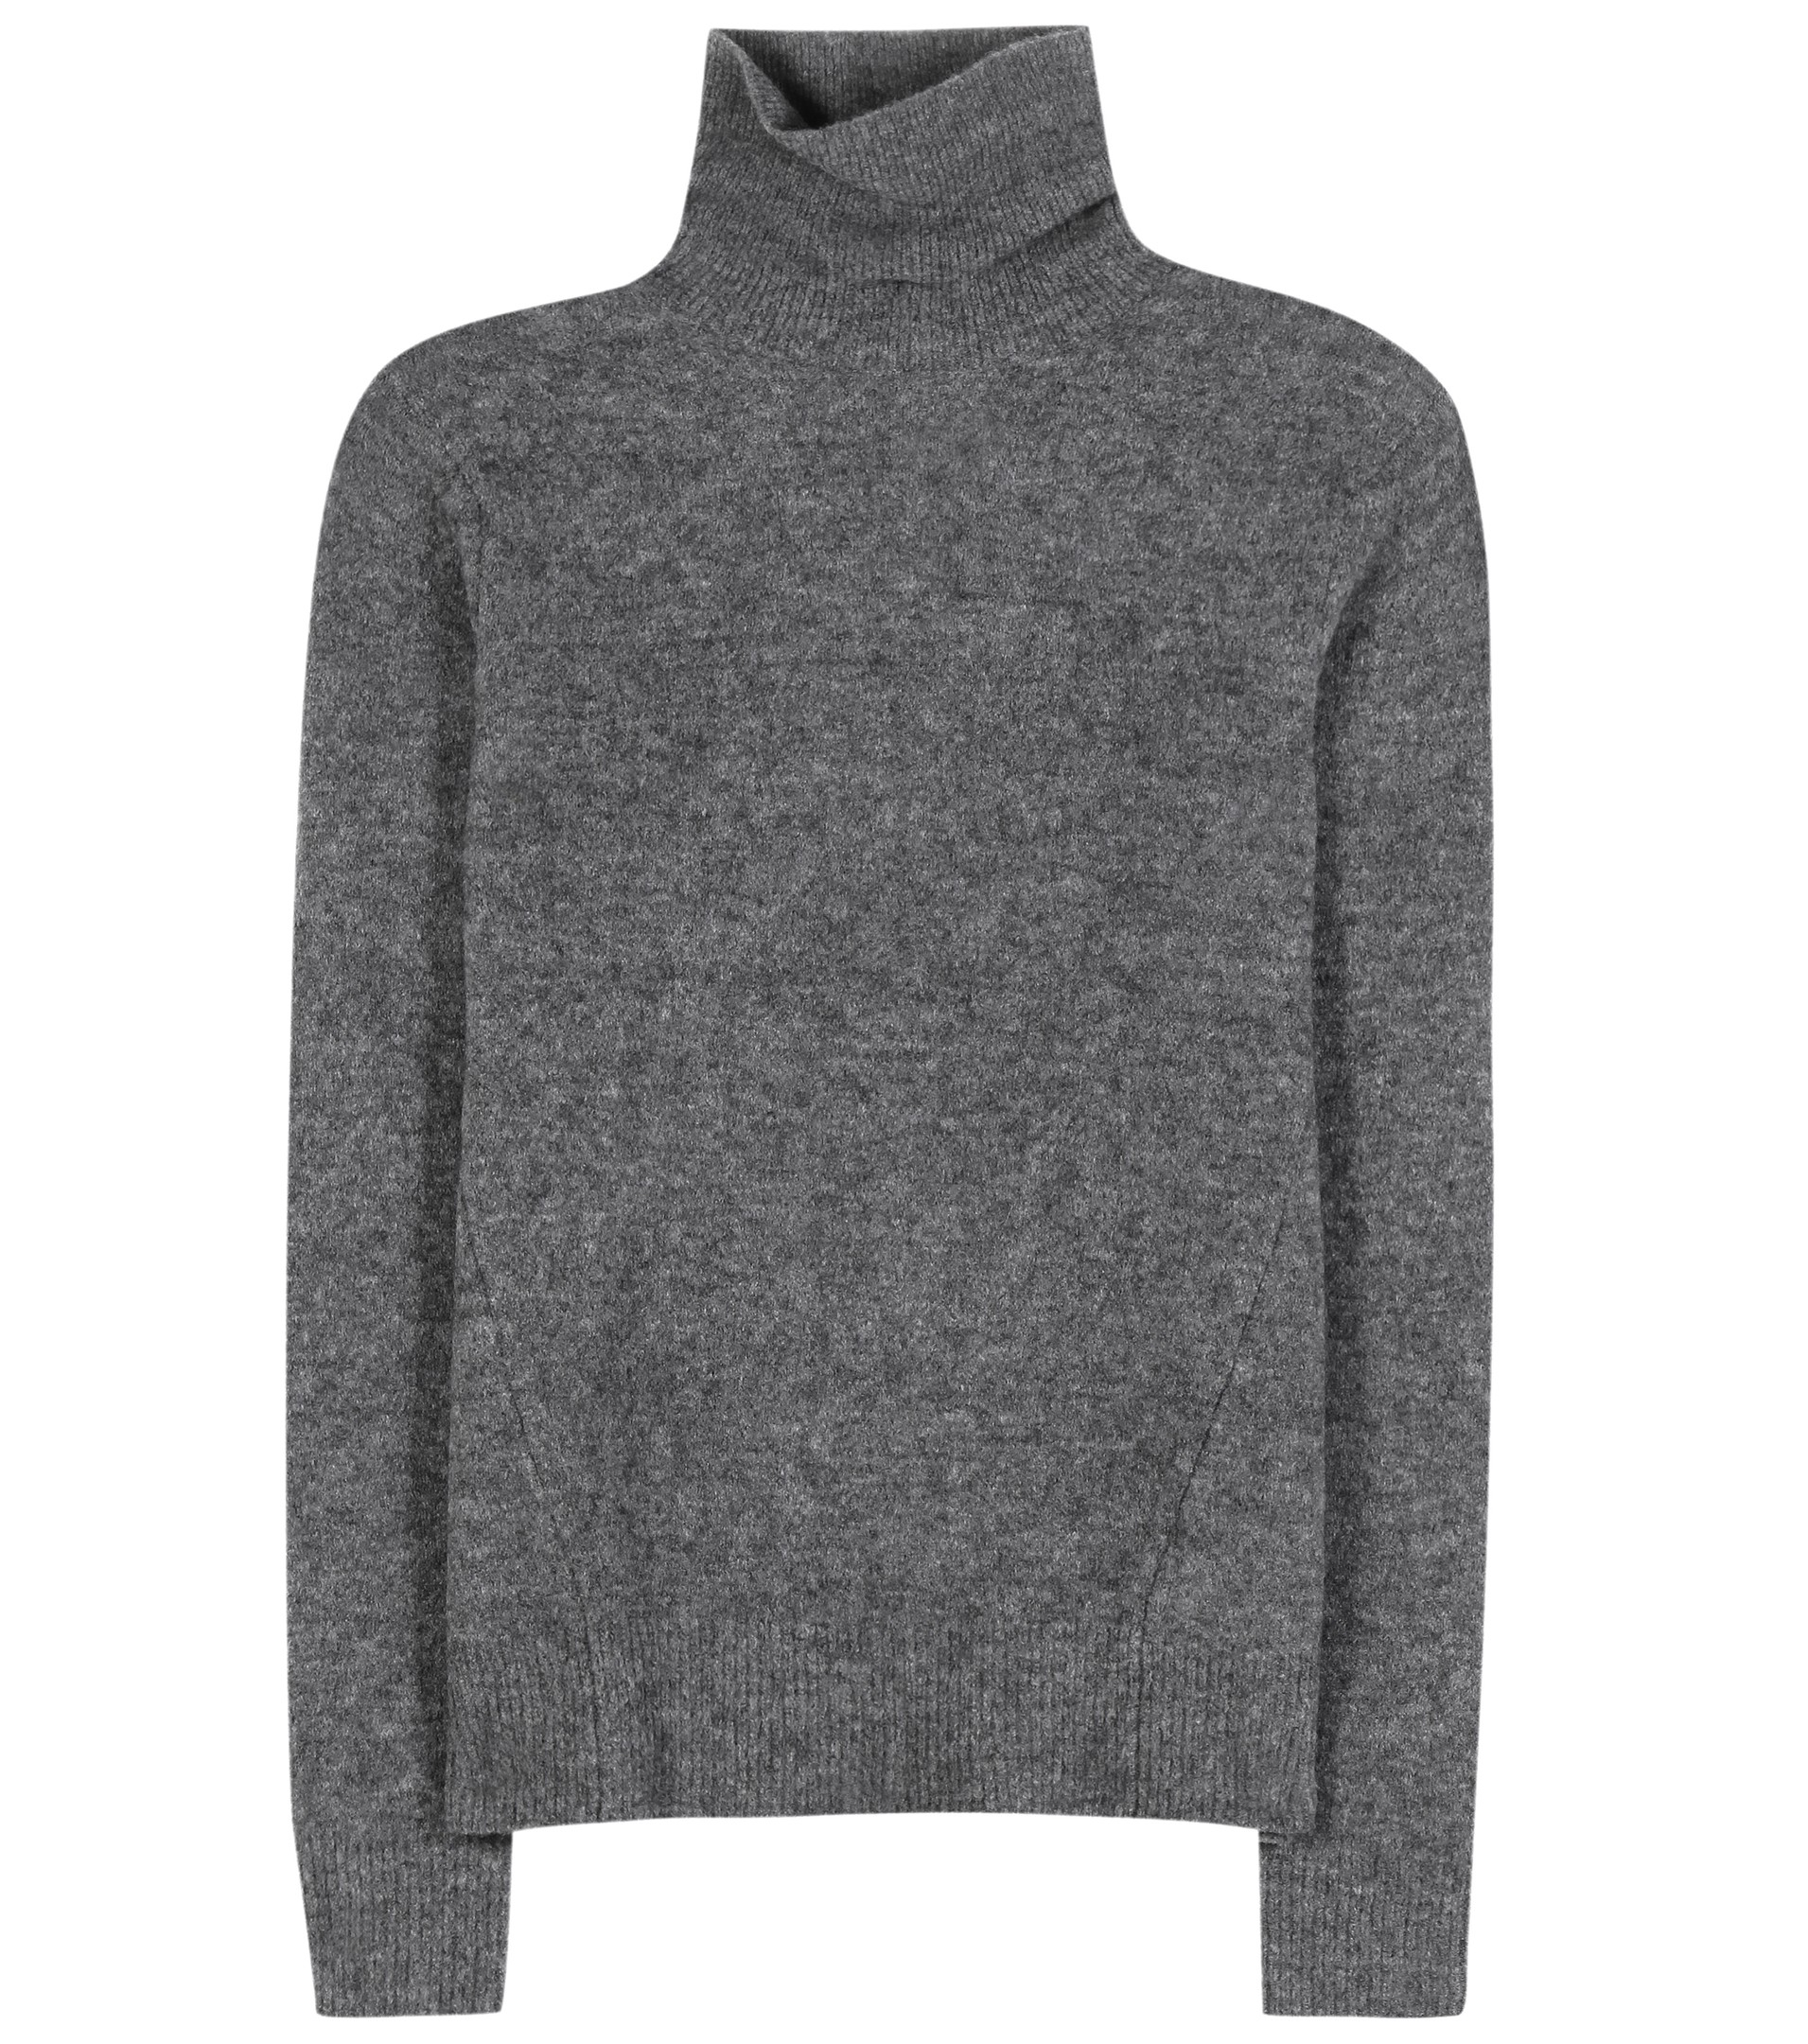 Marc by marc jacobs Wool-blend Turtleneck Sweater in Gray | Lyst